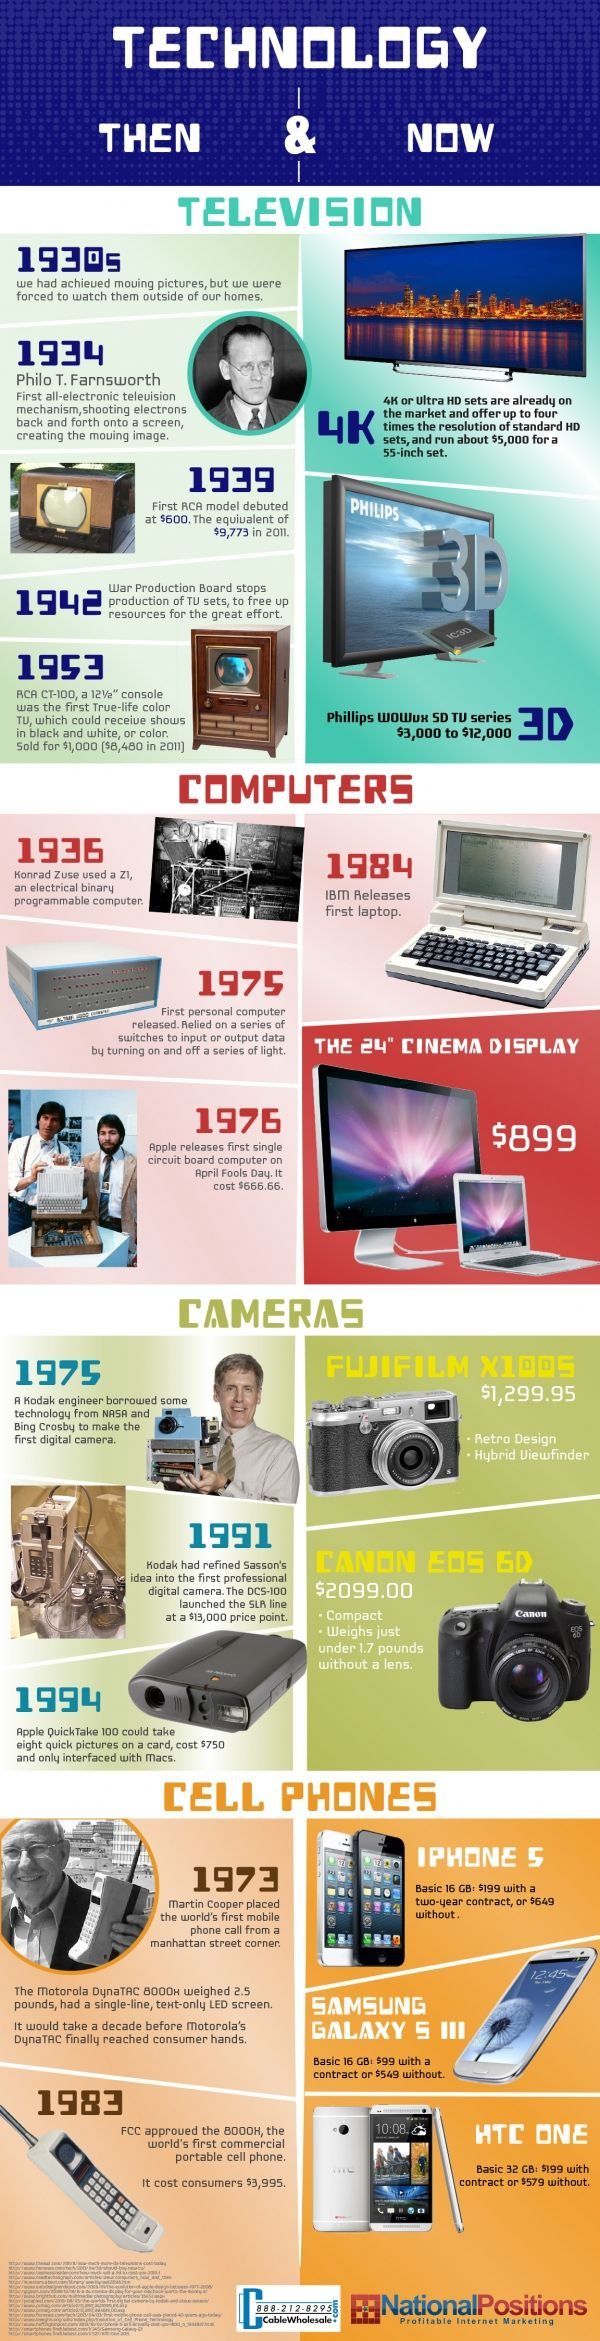 Comparison beetween technology today vs technology in the past #infographic